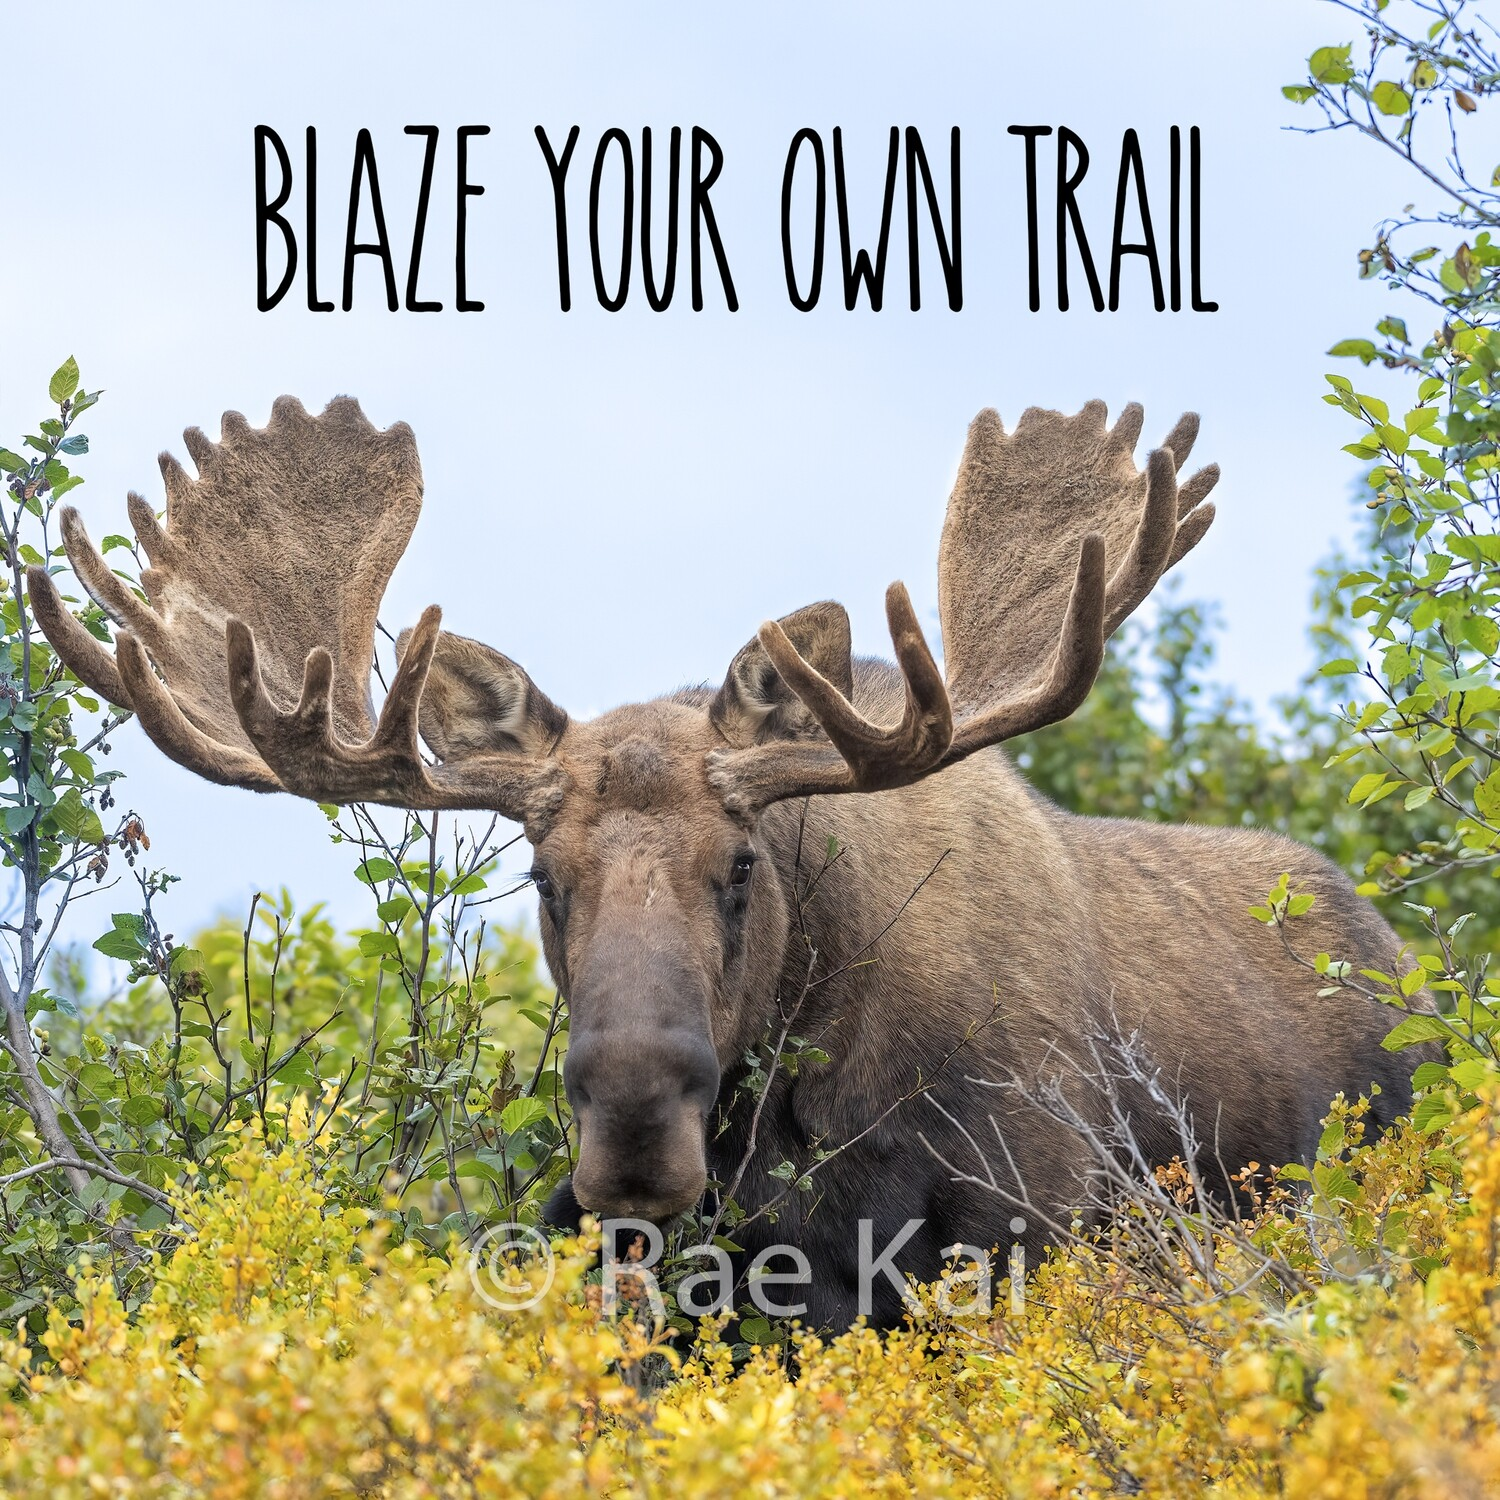 Blaze Your Own Trail-Inspirational Square Photo